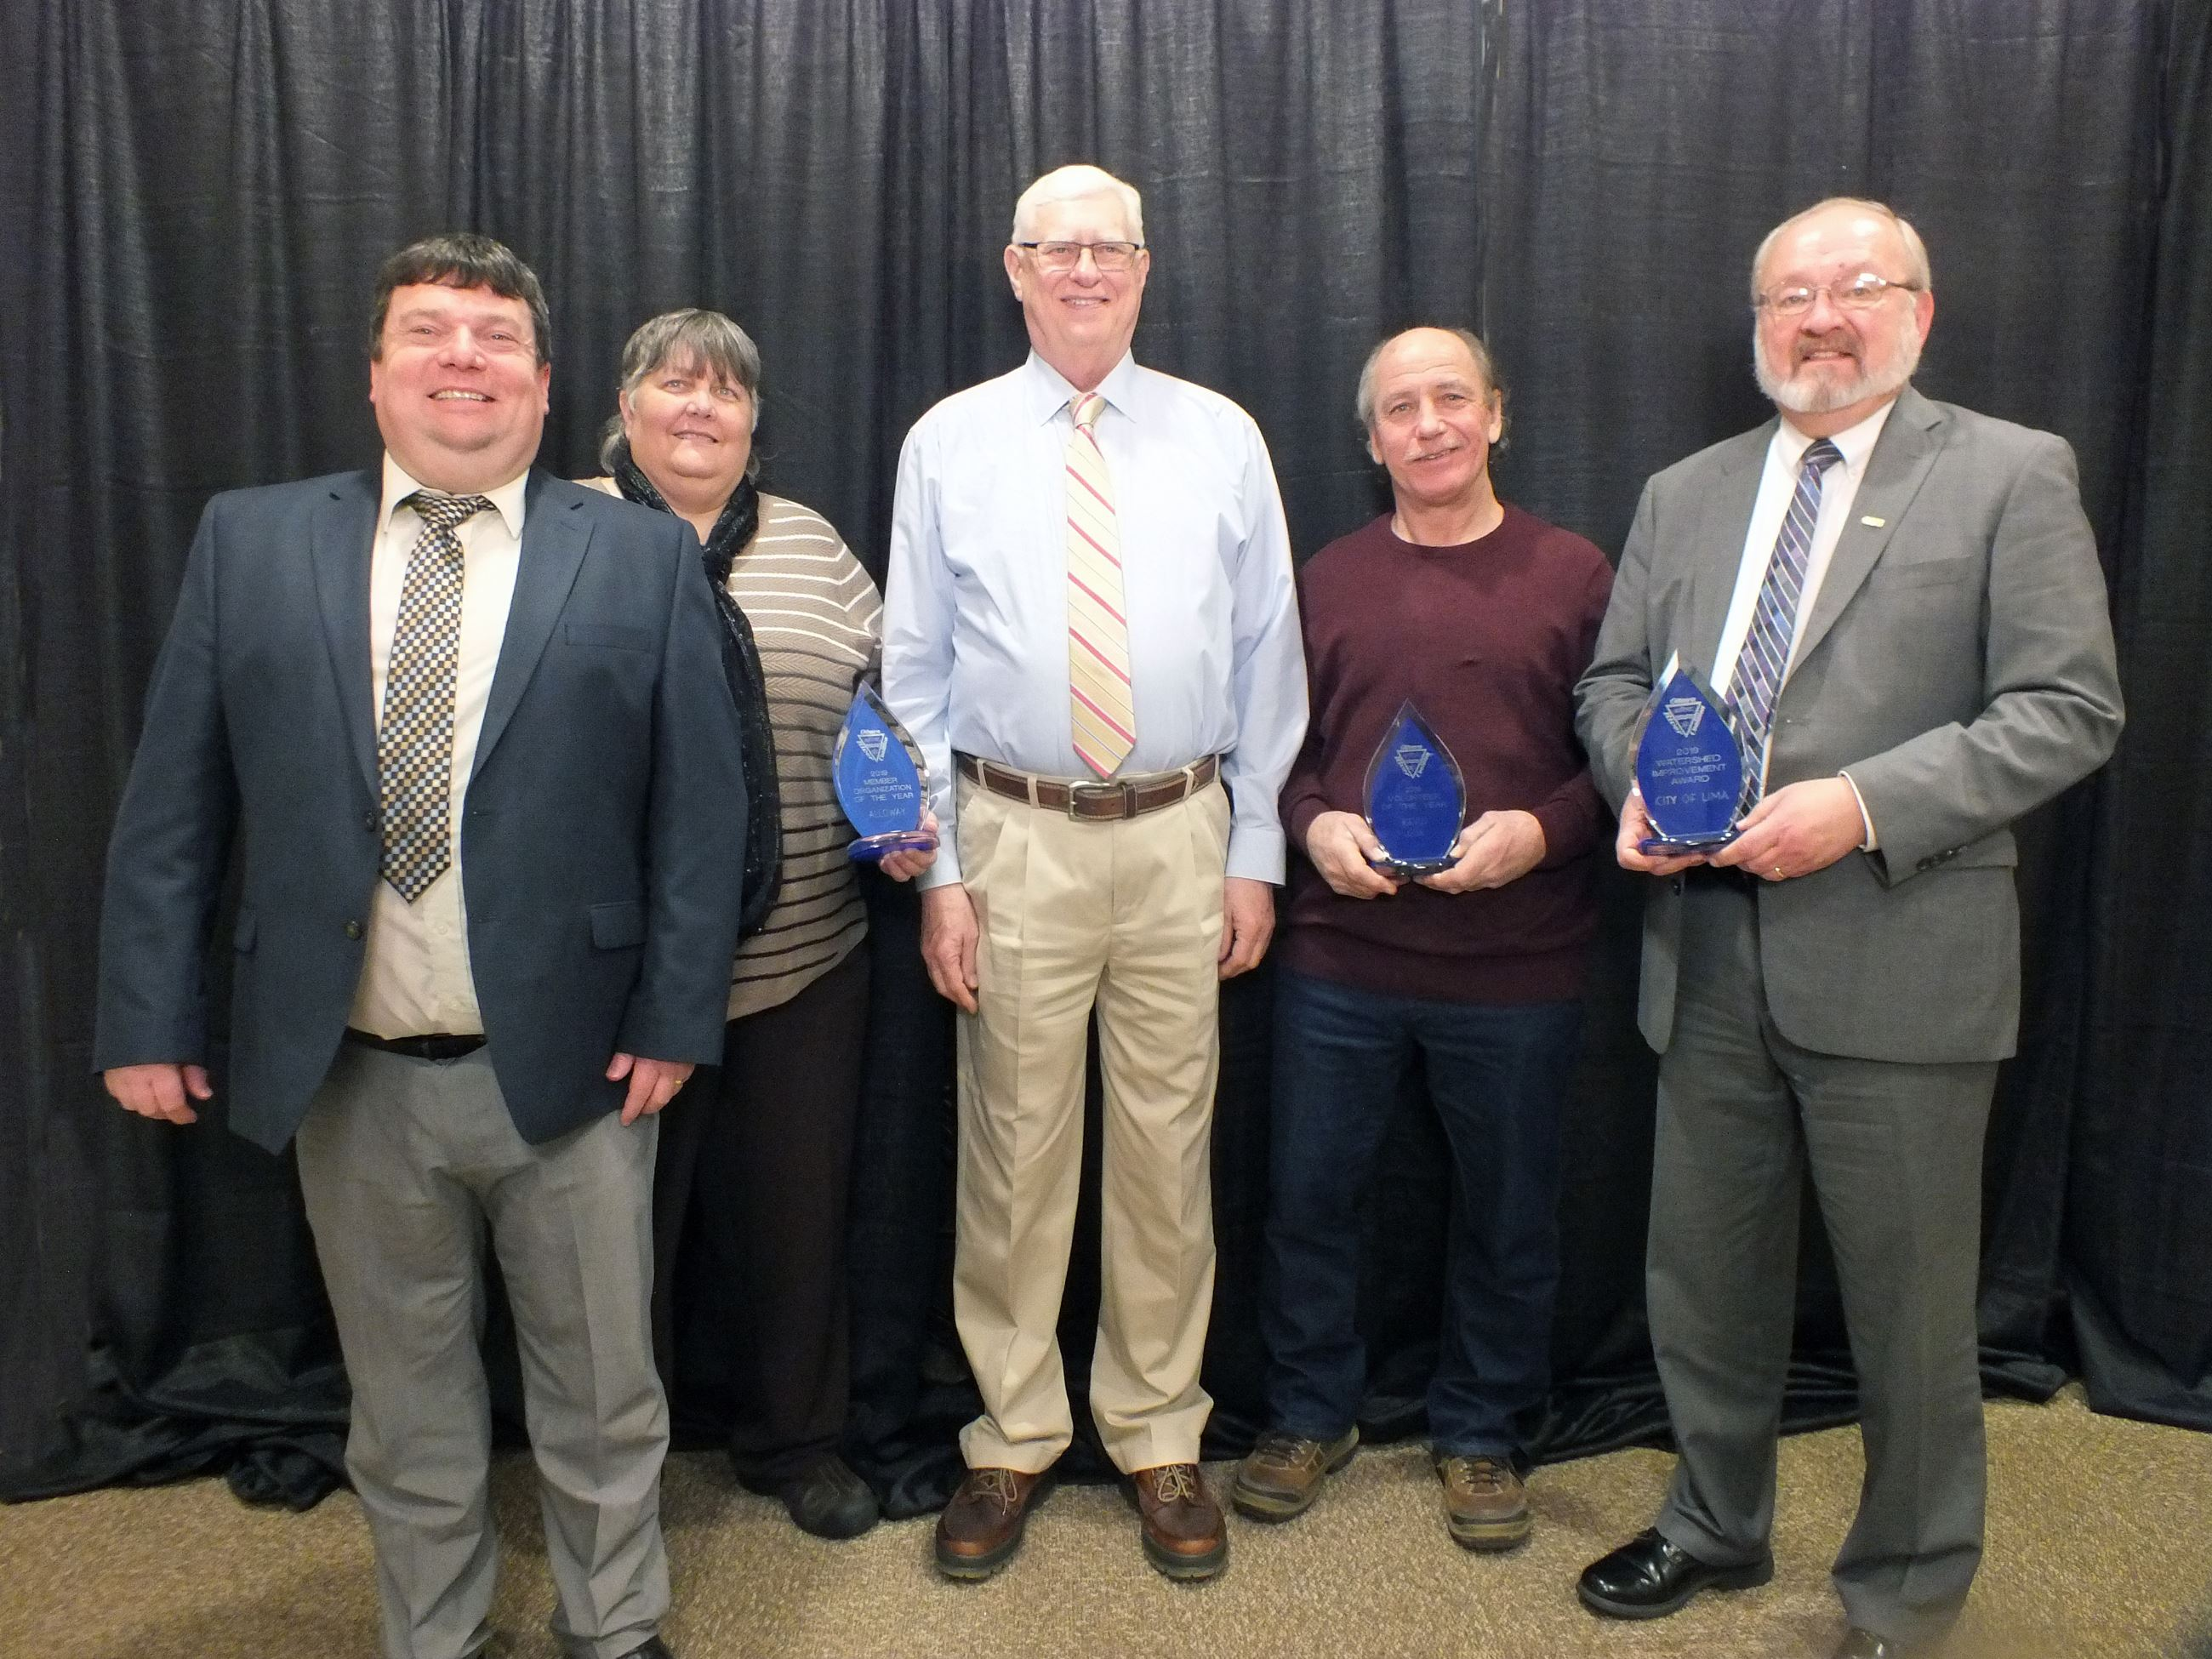 Ottawa River Coalition 2019 Award Winners